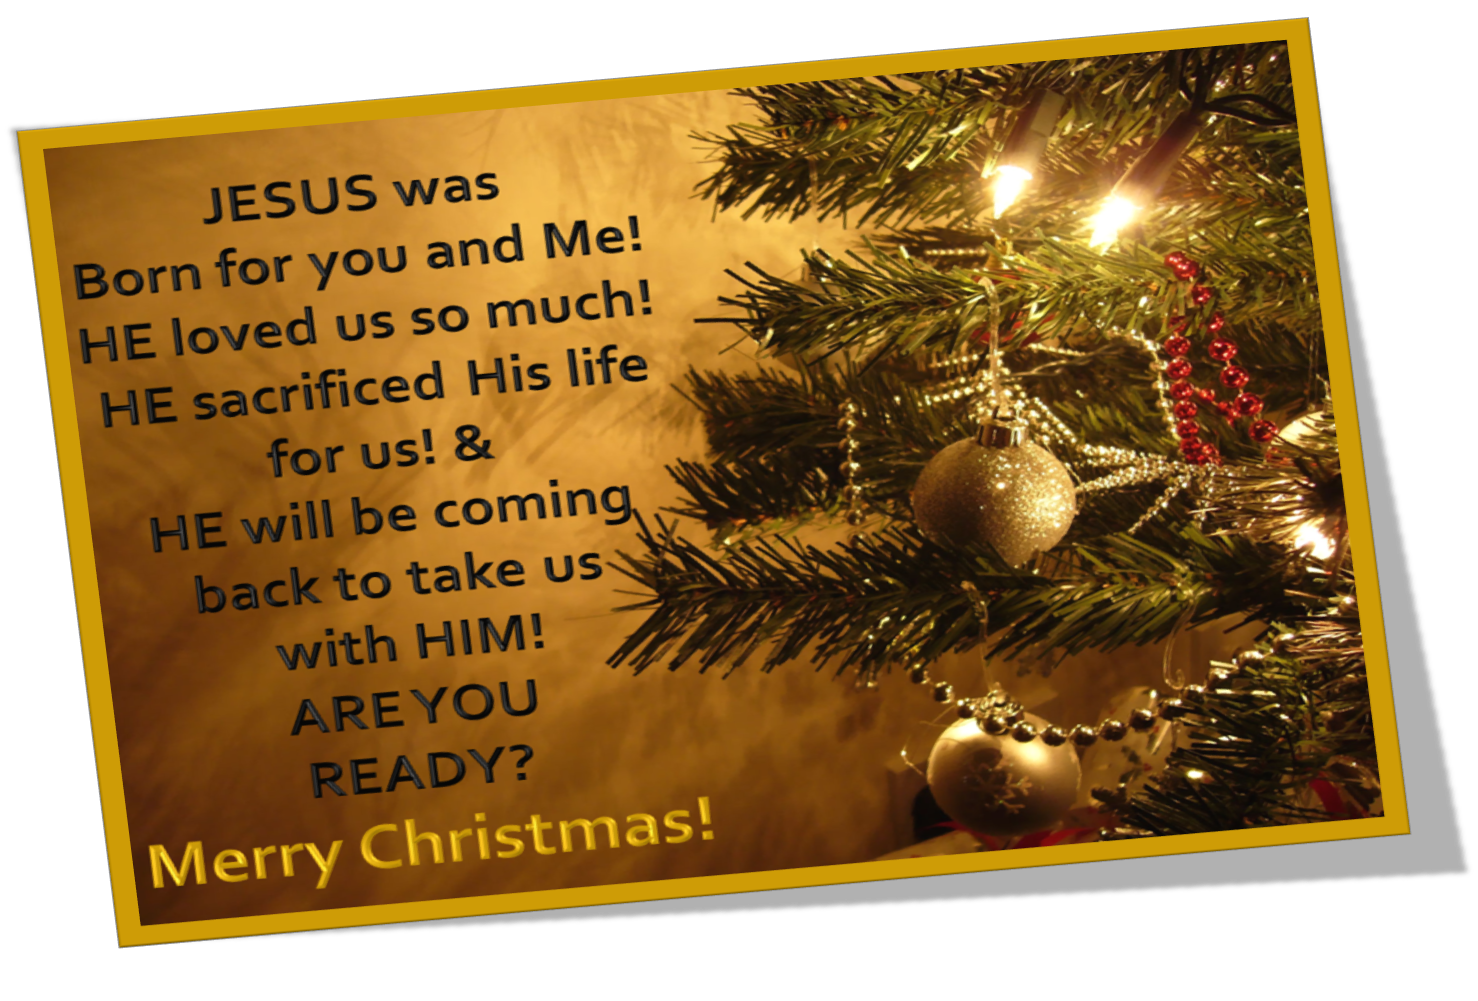 Merry Christmas Jesus Images | Misc. | Pinterest | Merry christmas ...